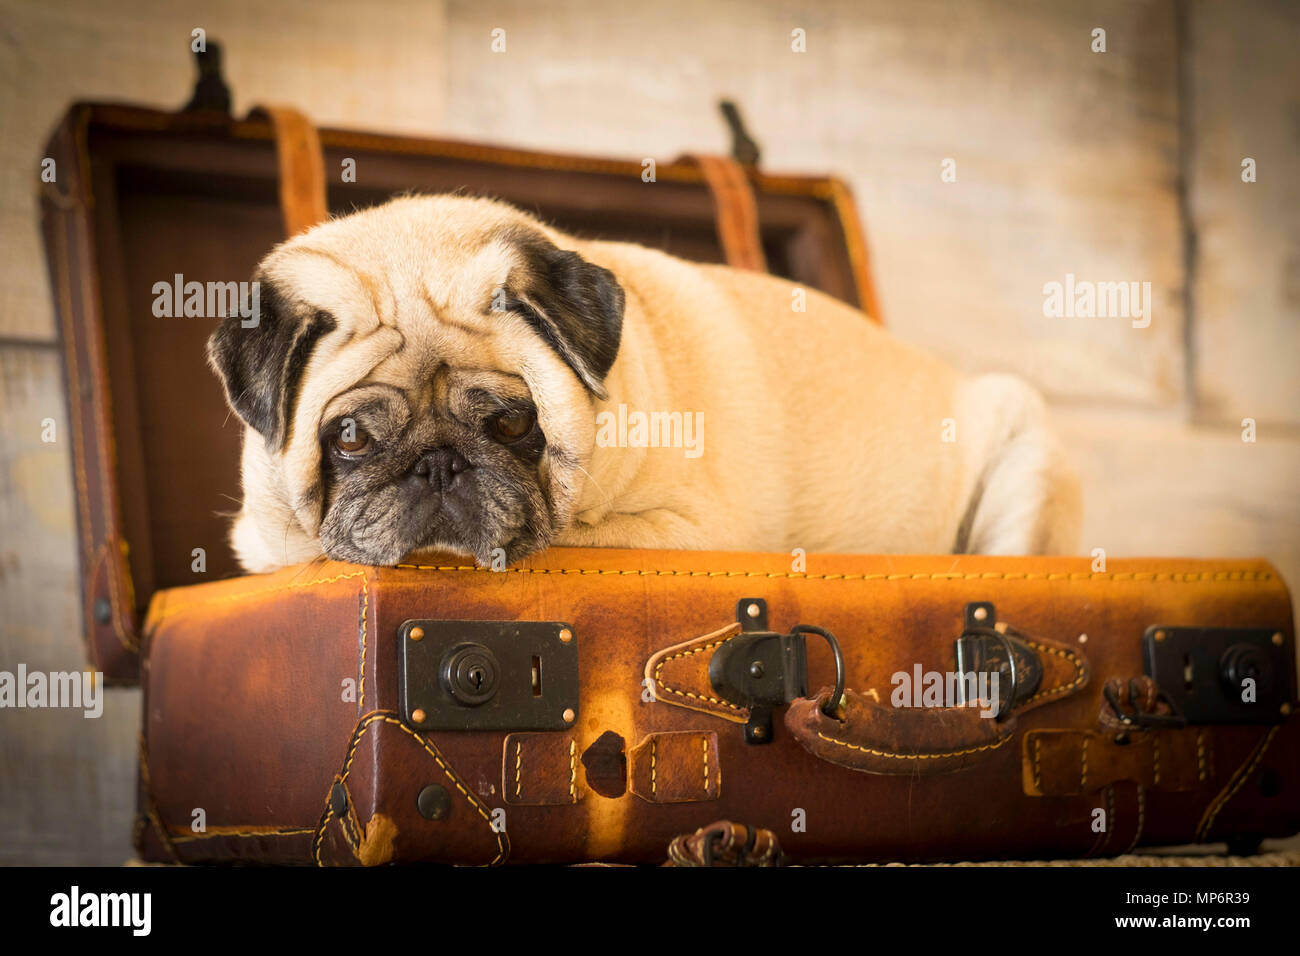 vintage filter and scene with old white pug lay down inside an old carrying case luggage. defocused background ancient style for wallpaper - Stock Image